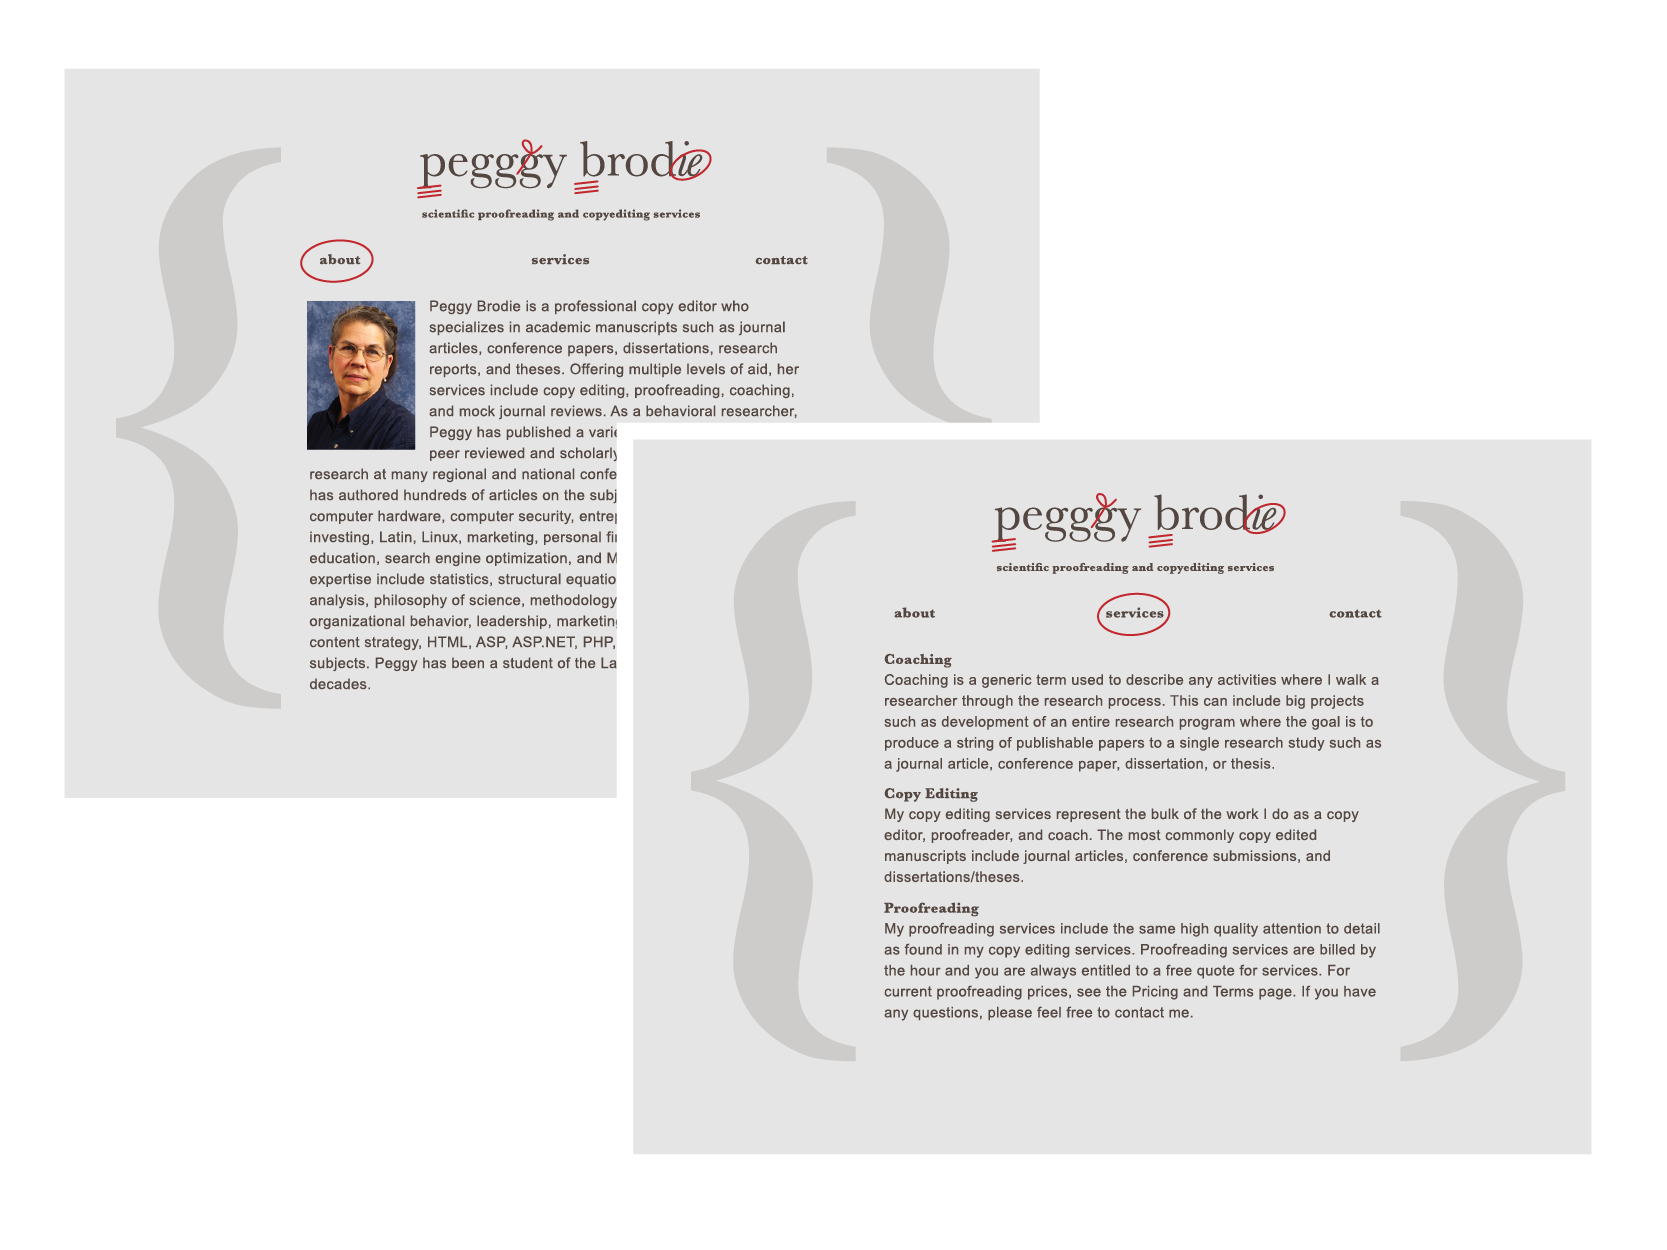 About and Resume Pages, Peggy Brodie